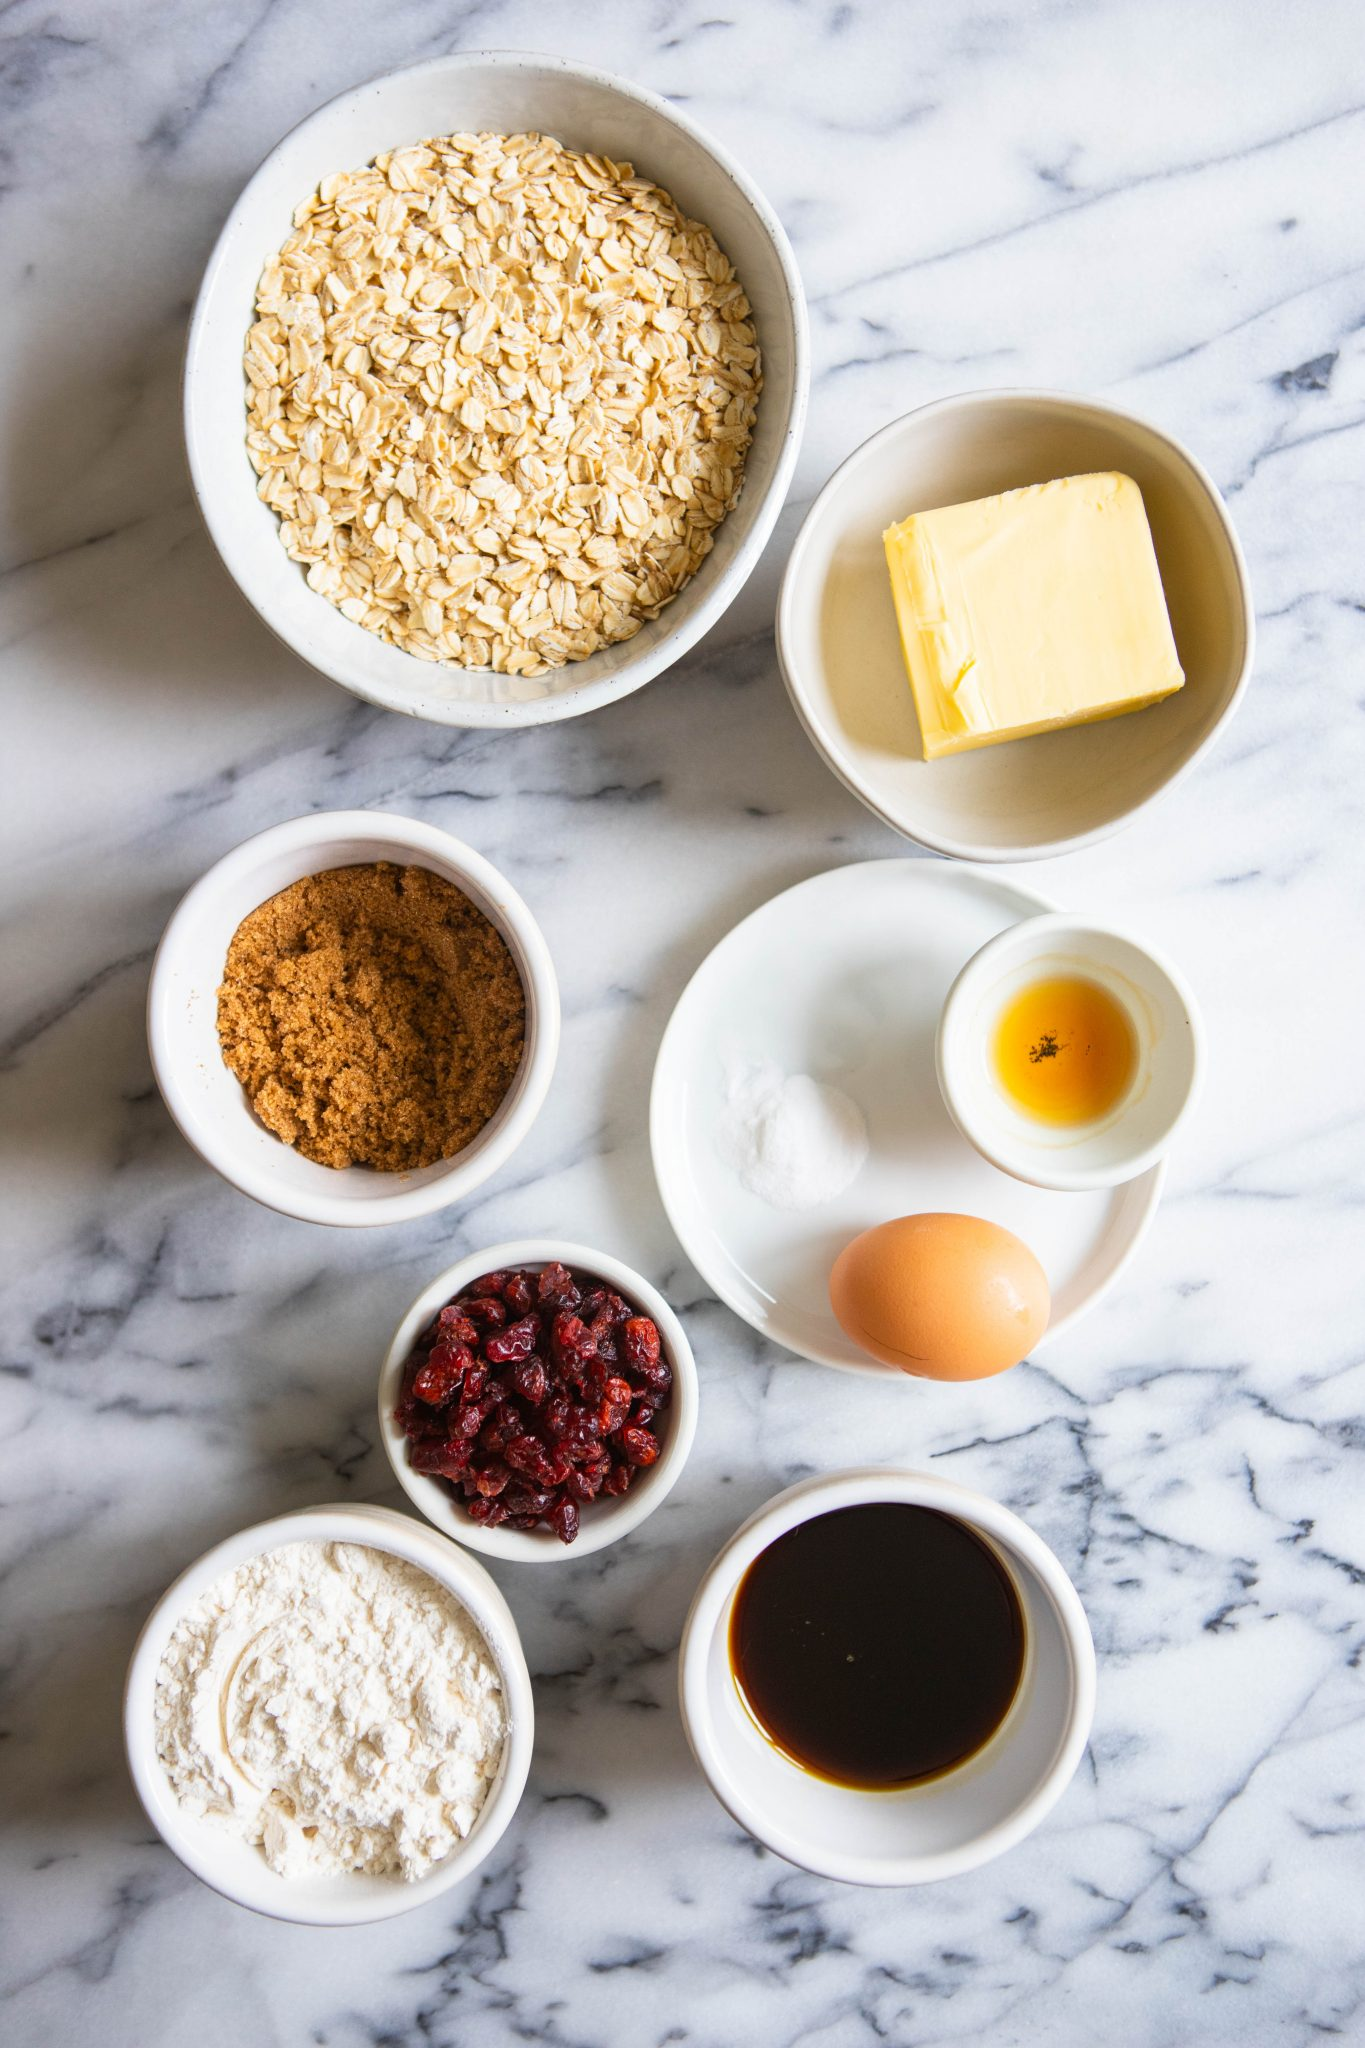 ingredients prepped in small bowls for oatmeal cranberry cookie recipe